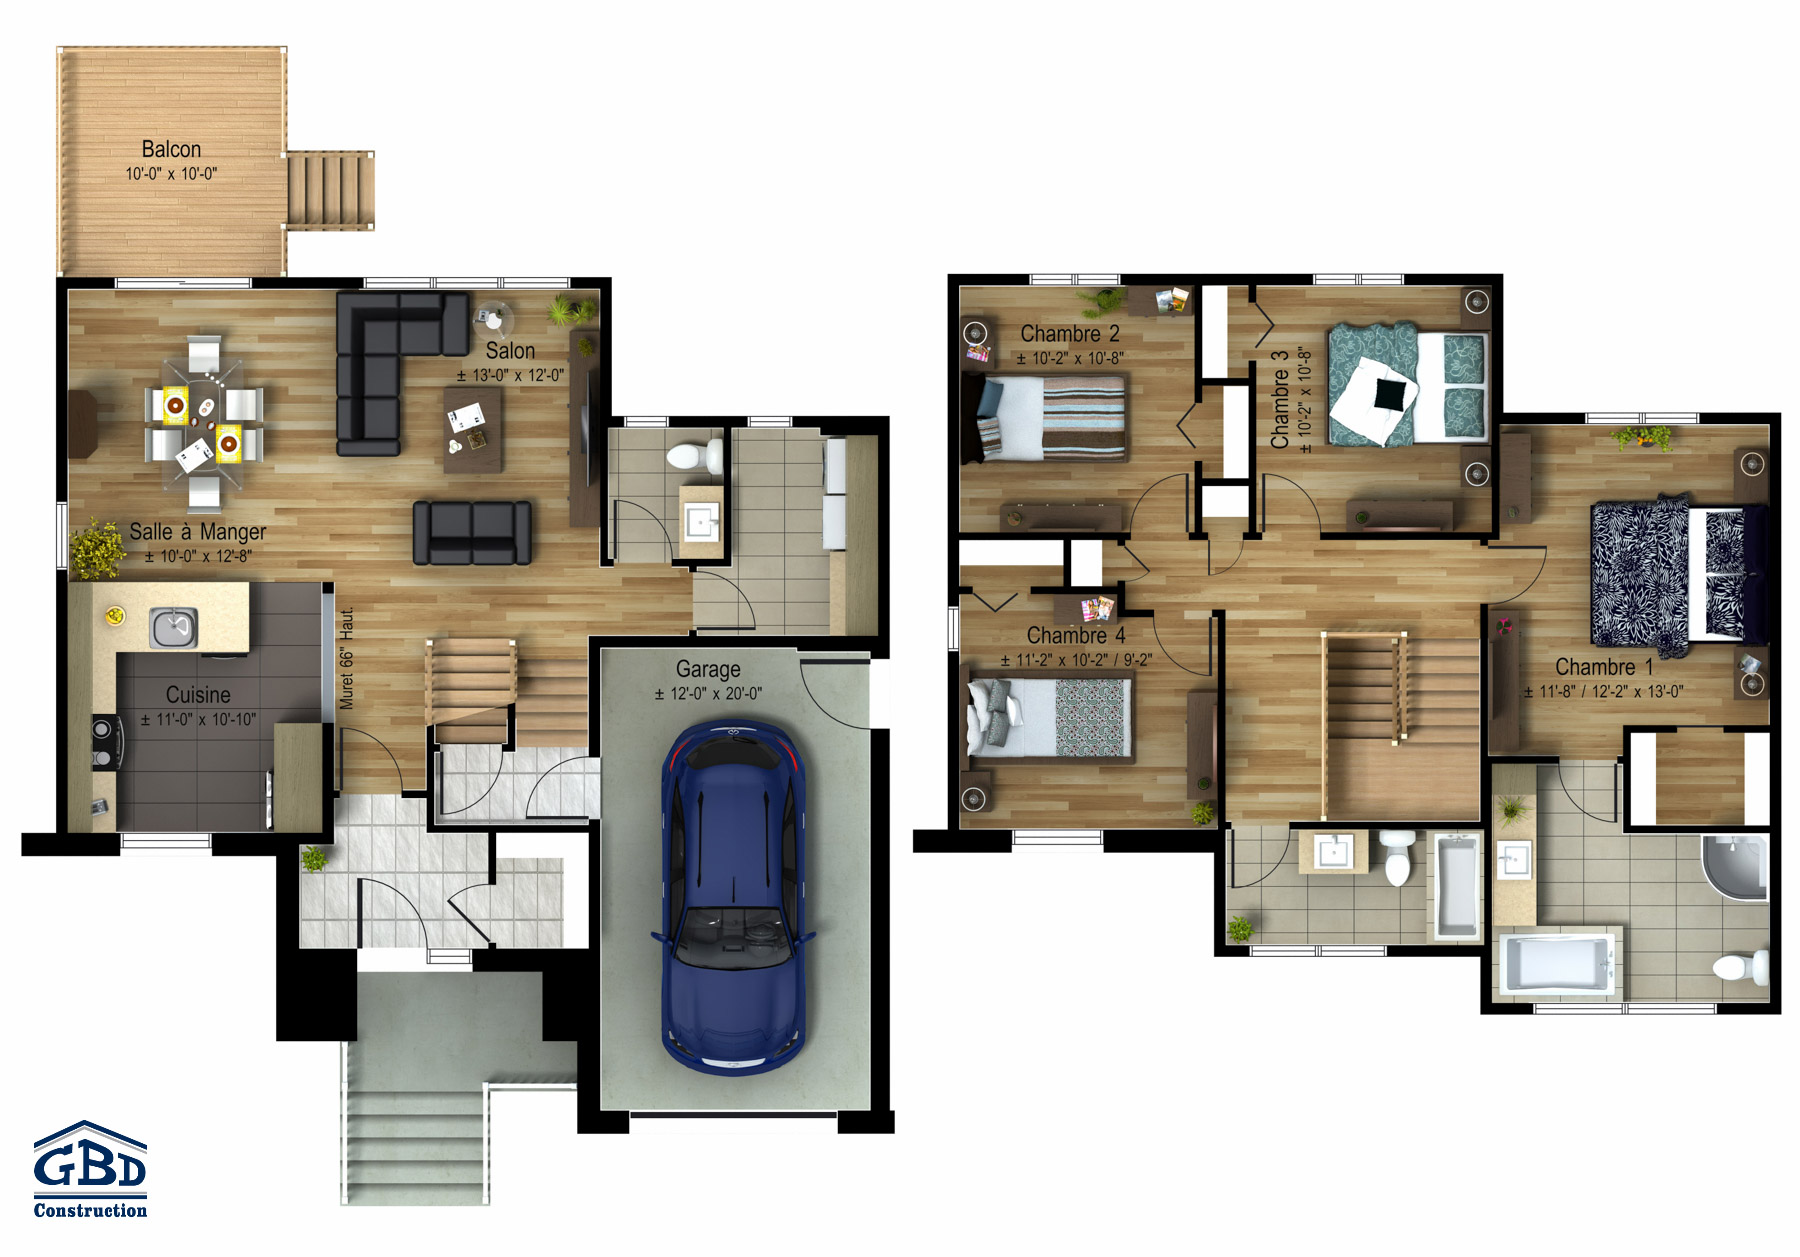 Volution maison neuve deux tages de type cottage for Plan maison 100m2 2 etages